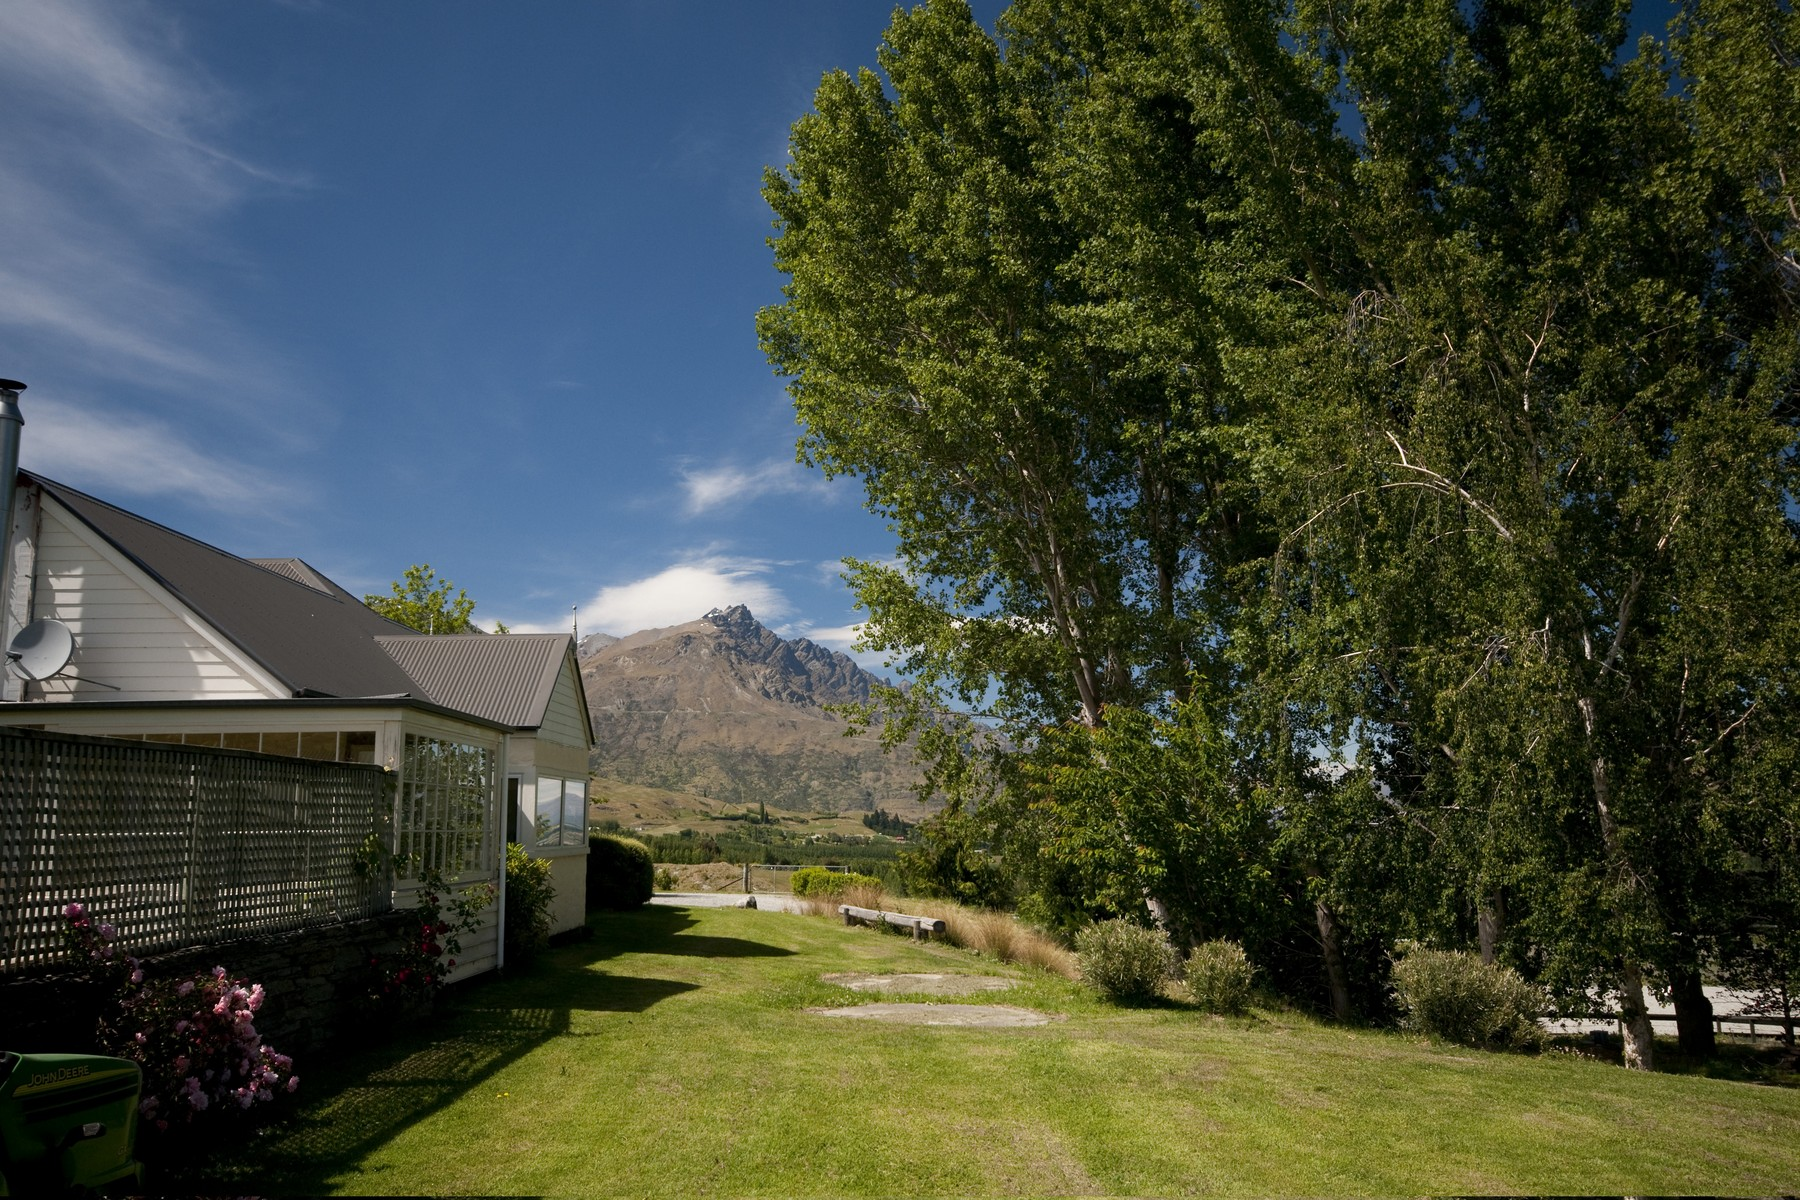 Einfamilienhaus für Verkauf beim Speargrass Farm, 125 Hunter Road 125 Hunter Road Speargrass Flat Queenstown, Southern Lakes, 9371 Neuseeland